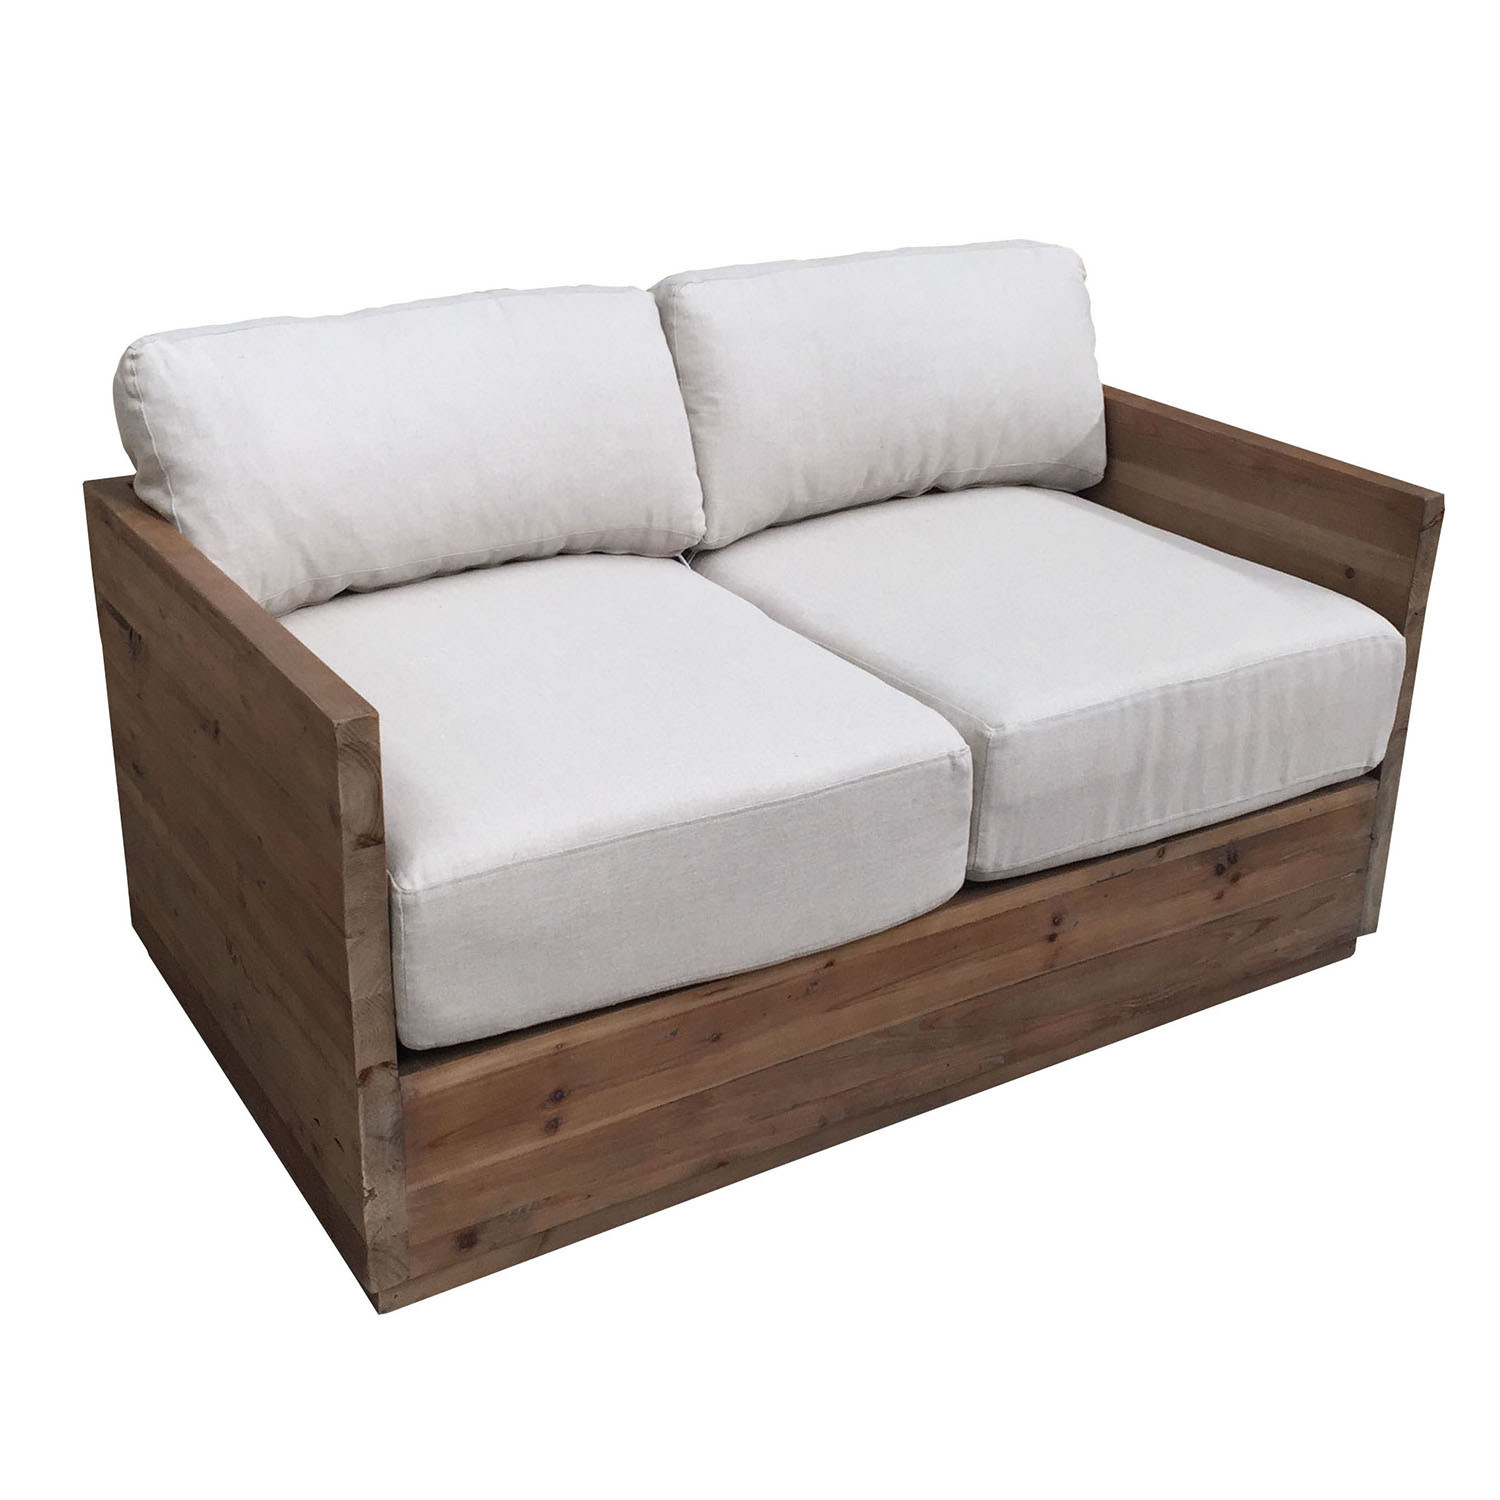 China Two Seater Wooden Frame Outdoor